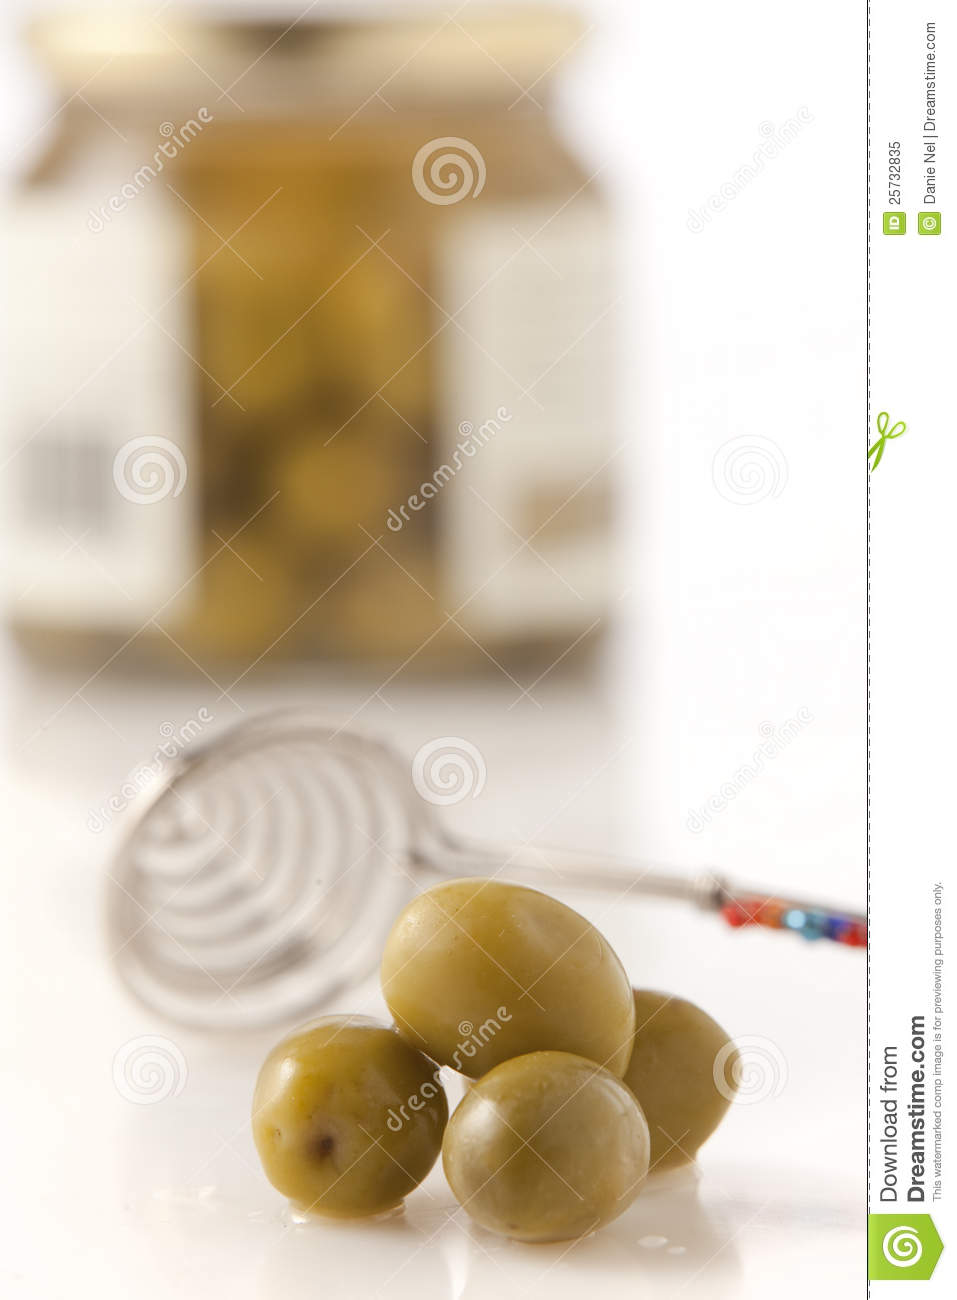 Green olives from a jar